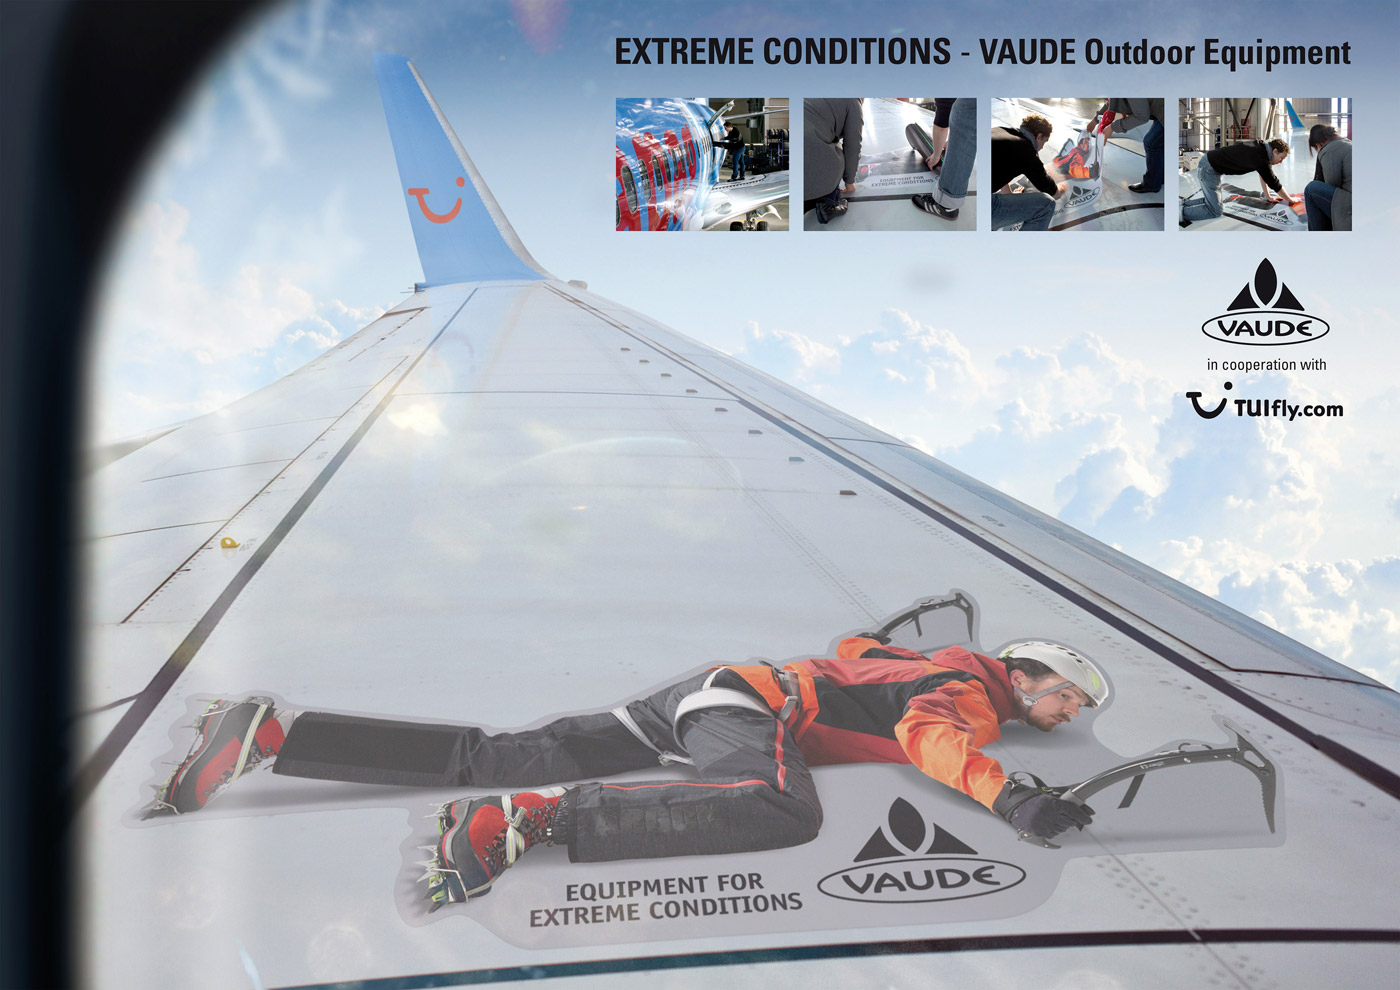 Vaude TUI Fly Extreme Guerrilla Aktion